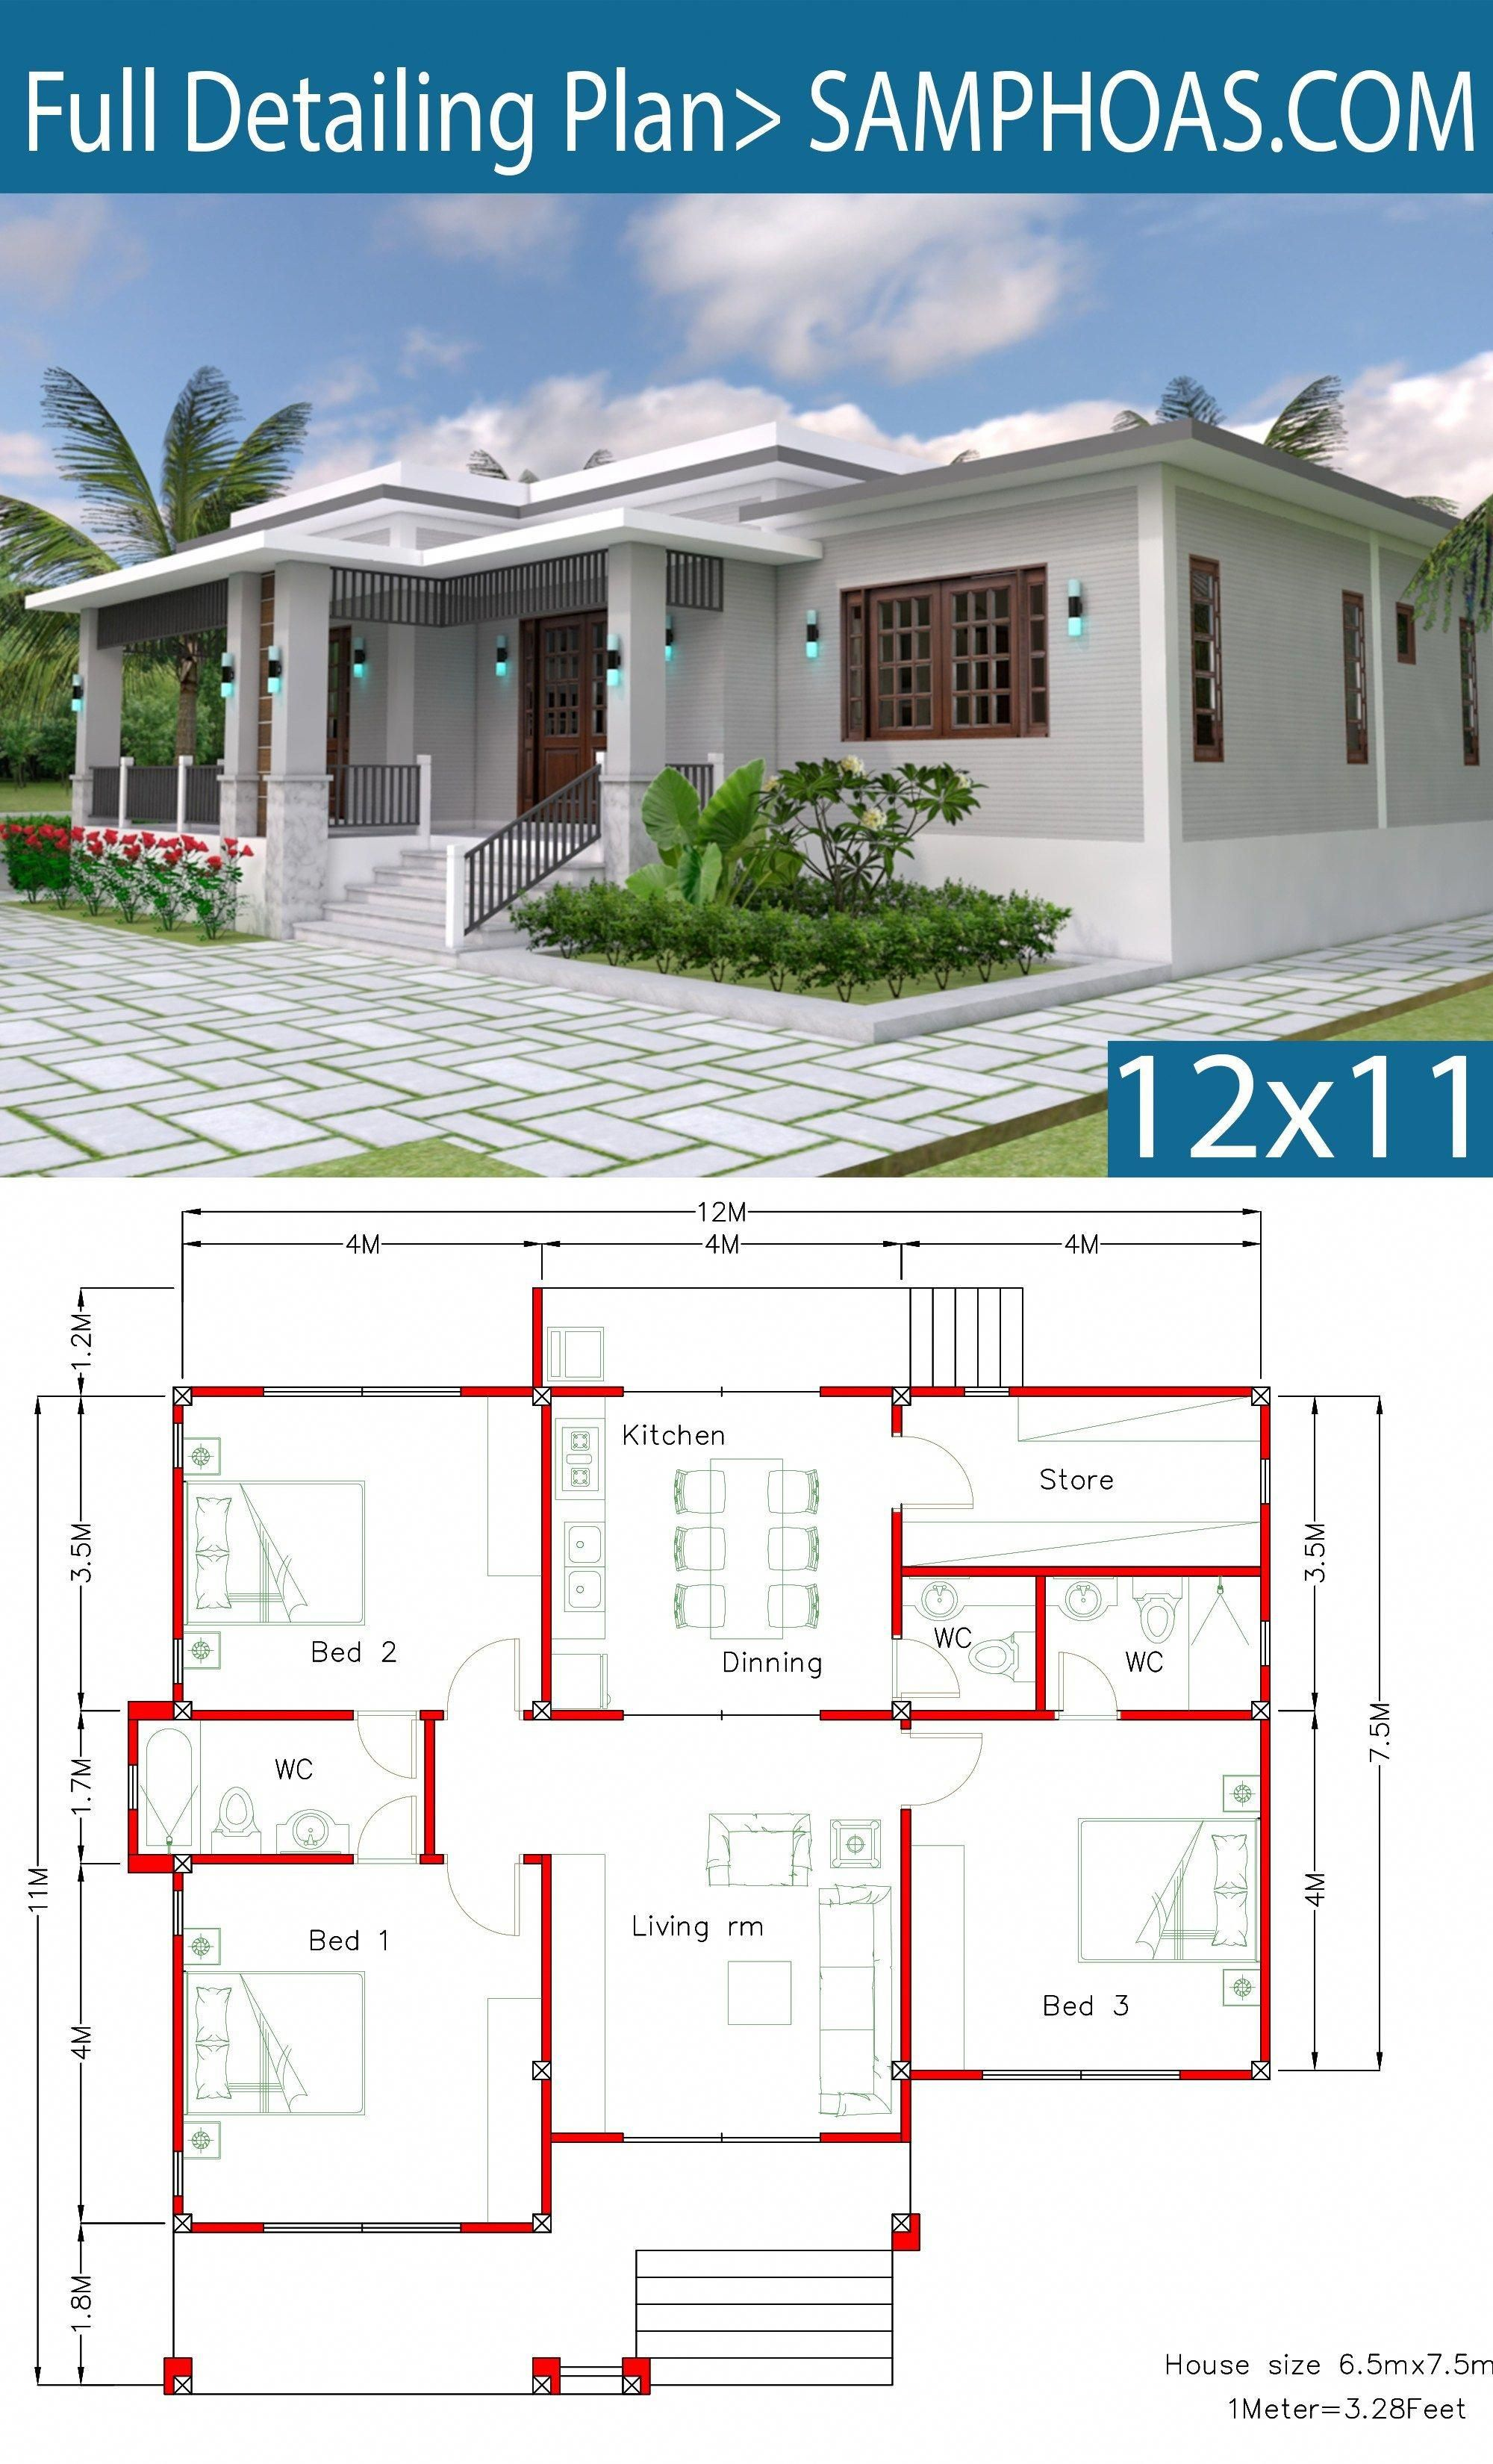 House Design With Full Plan 12x11m 3 Bedrooms Samphoas Plan Modernhomedesigns Bungalow House Design House Design Home Design Floor Plans